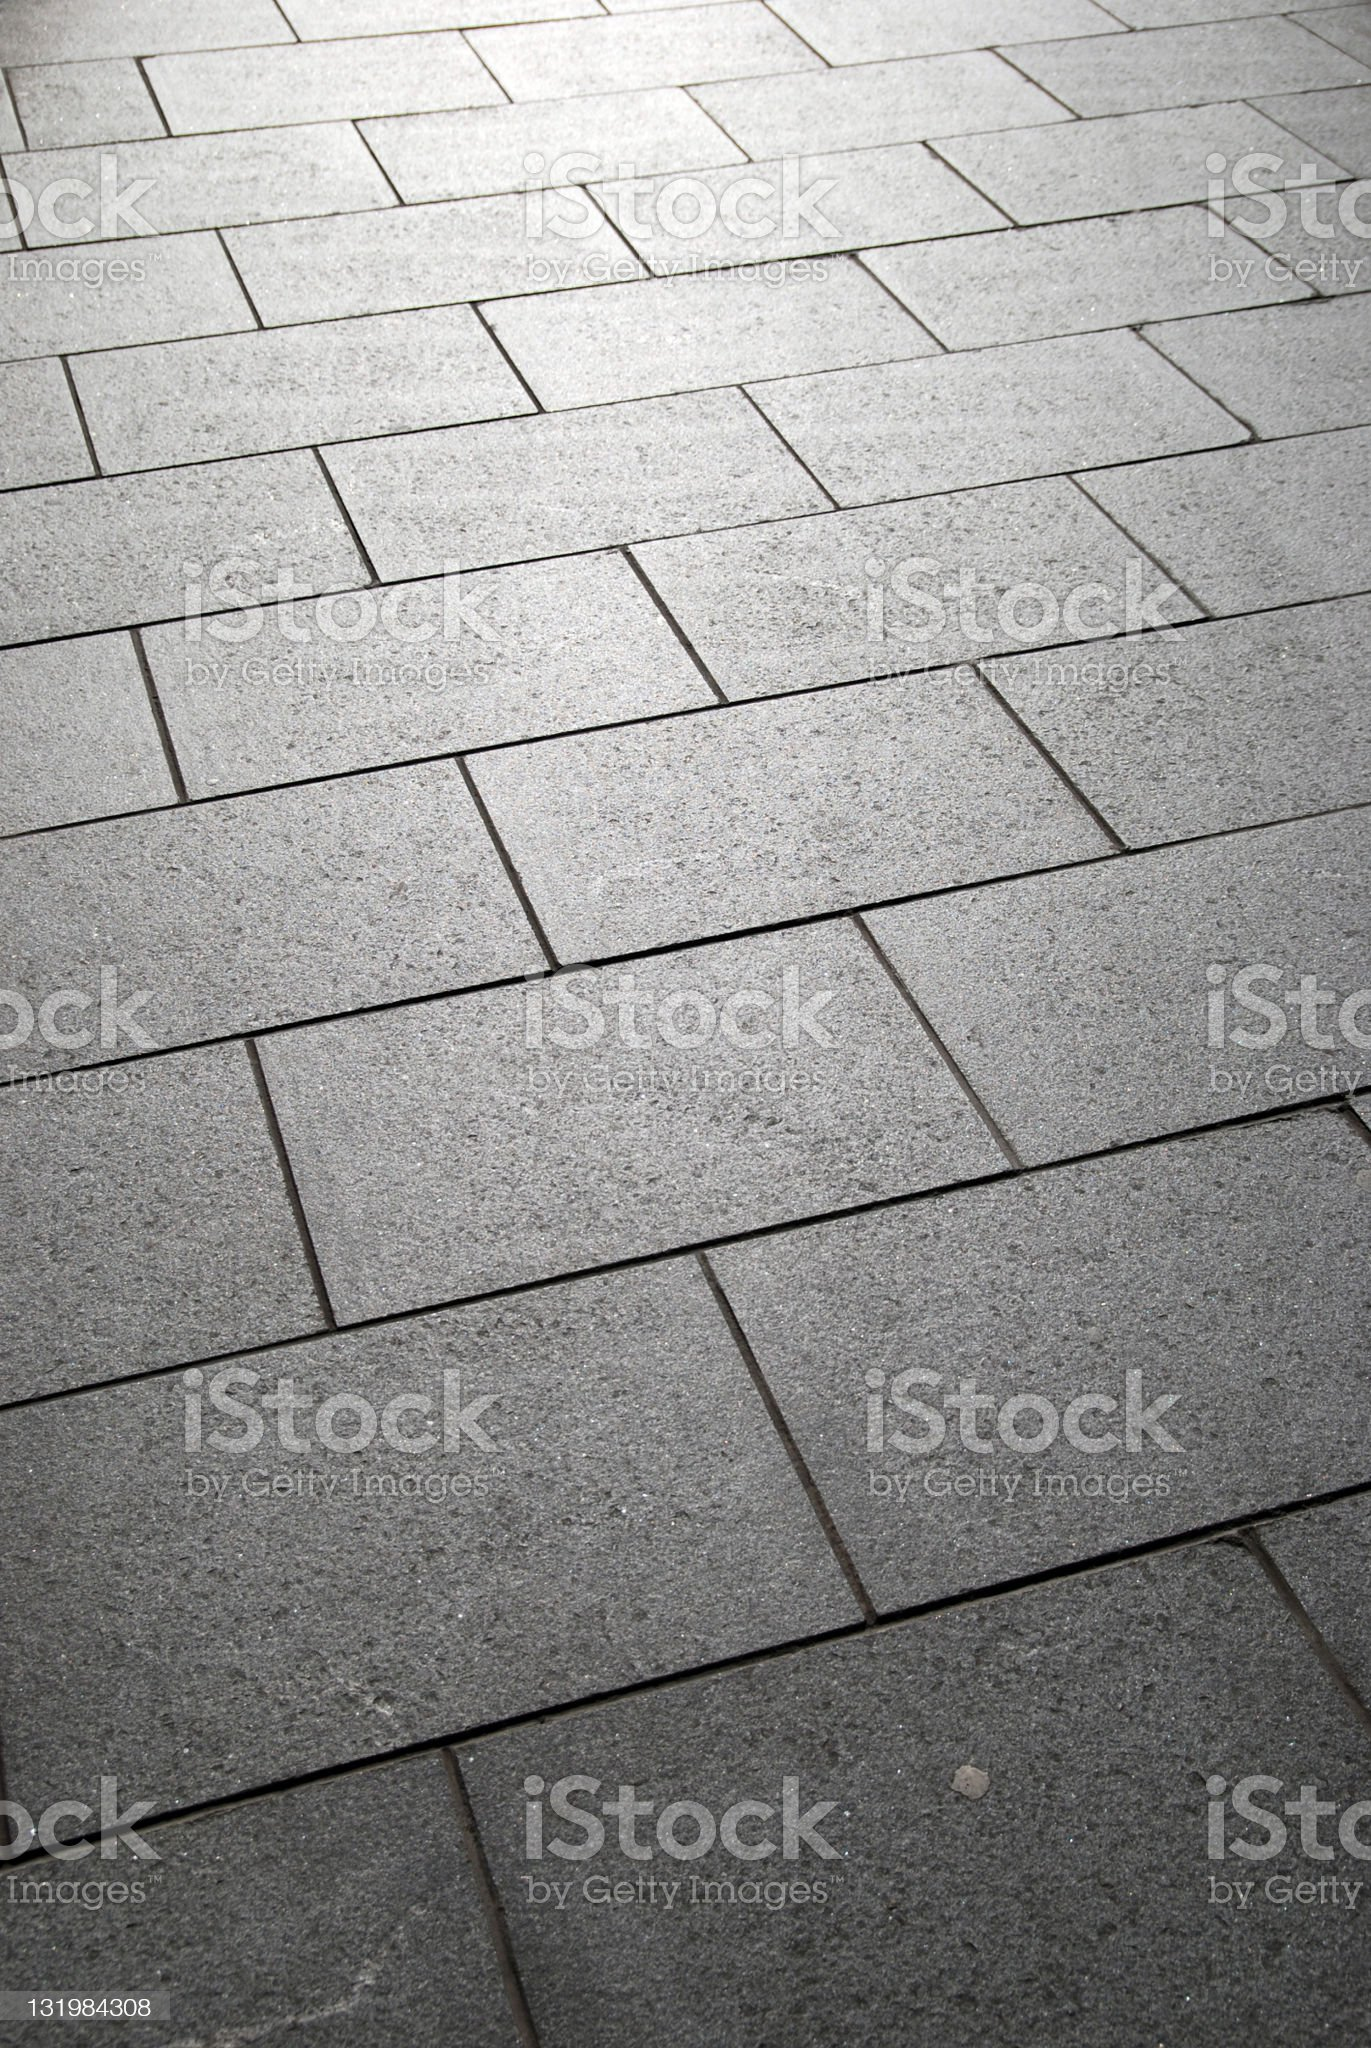 Sidewalk pavement abstract background royalty-free stock photo